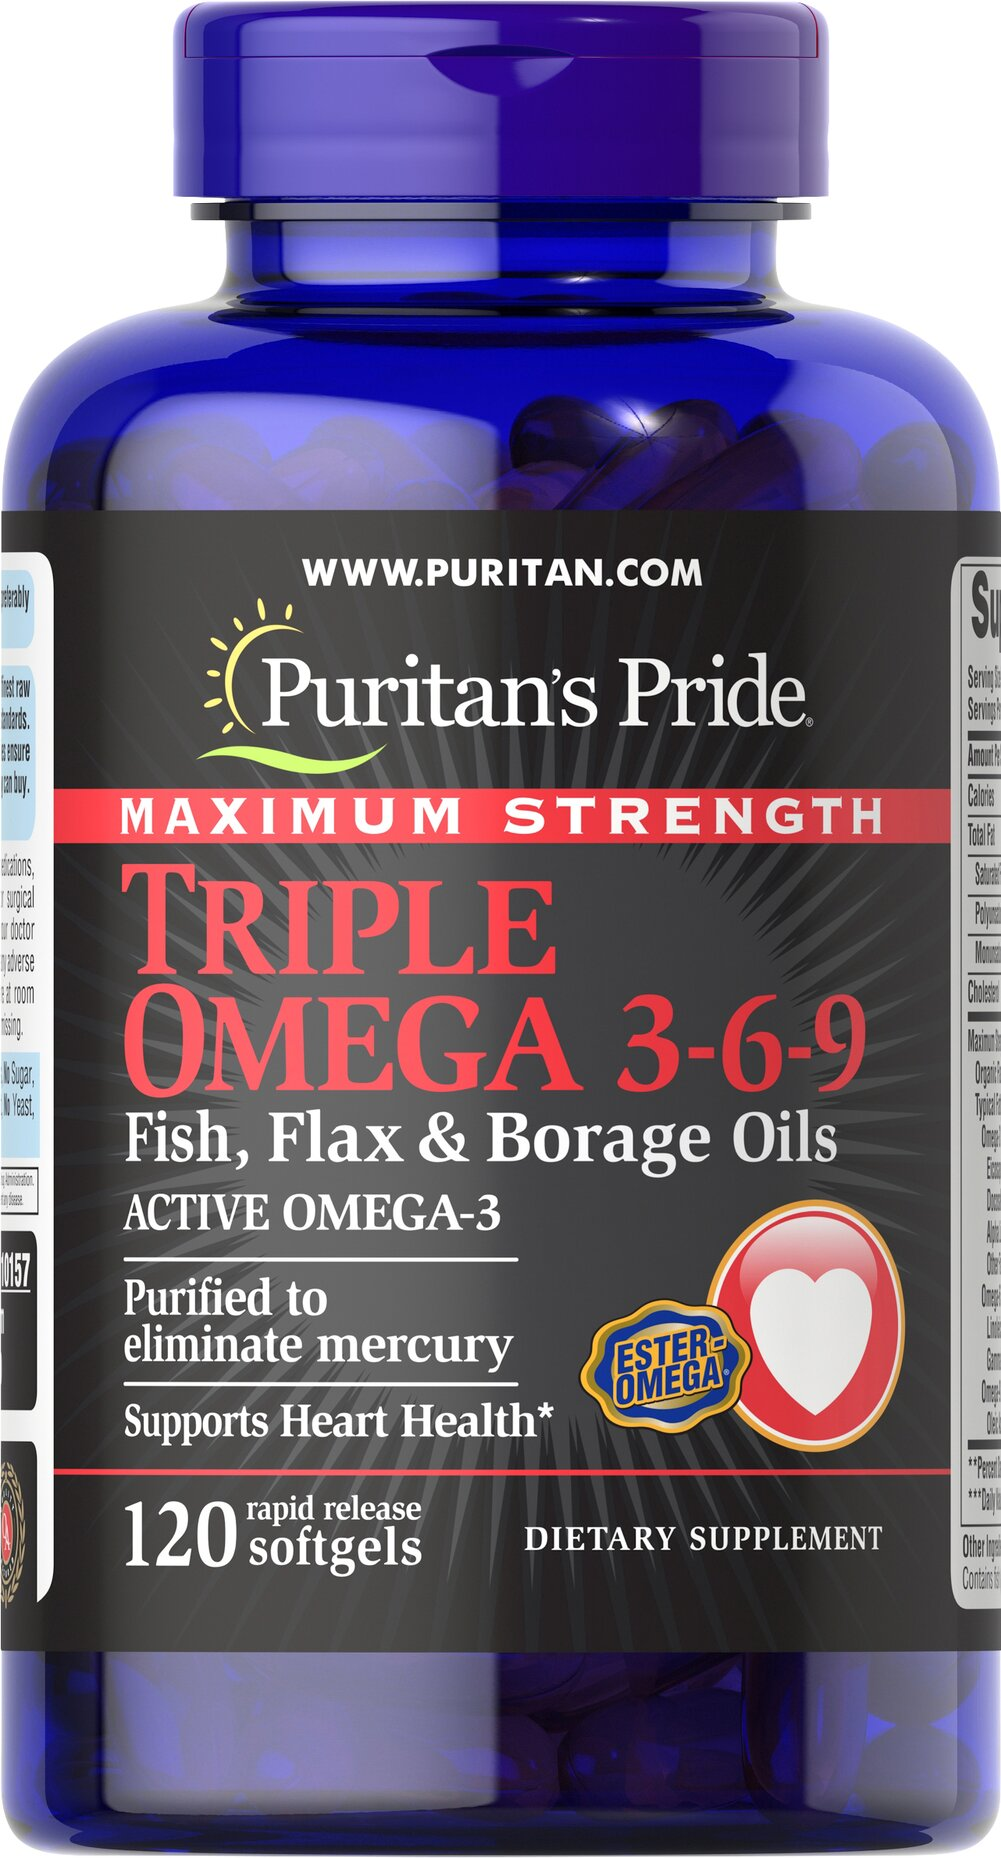 Maximum Strength Triple Omega 3-6-9 Fish, Flax & Borage Oils <p><strong>Purified to Eliminate Mercury</strong></p><p>Recent scientific research highlights the importance of getting Omega fatty acids. </p><p>TRIPLE OMEGA 3-6-9 contains essential and non-essential fatty acids from flax, fish and borage oils.  (1200 mg each) plus 50% of your daily value for Vitamin E. This superb formula is one of the best ways to support cardiovascular health.**</p&